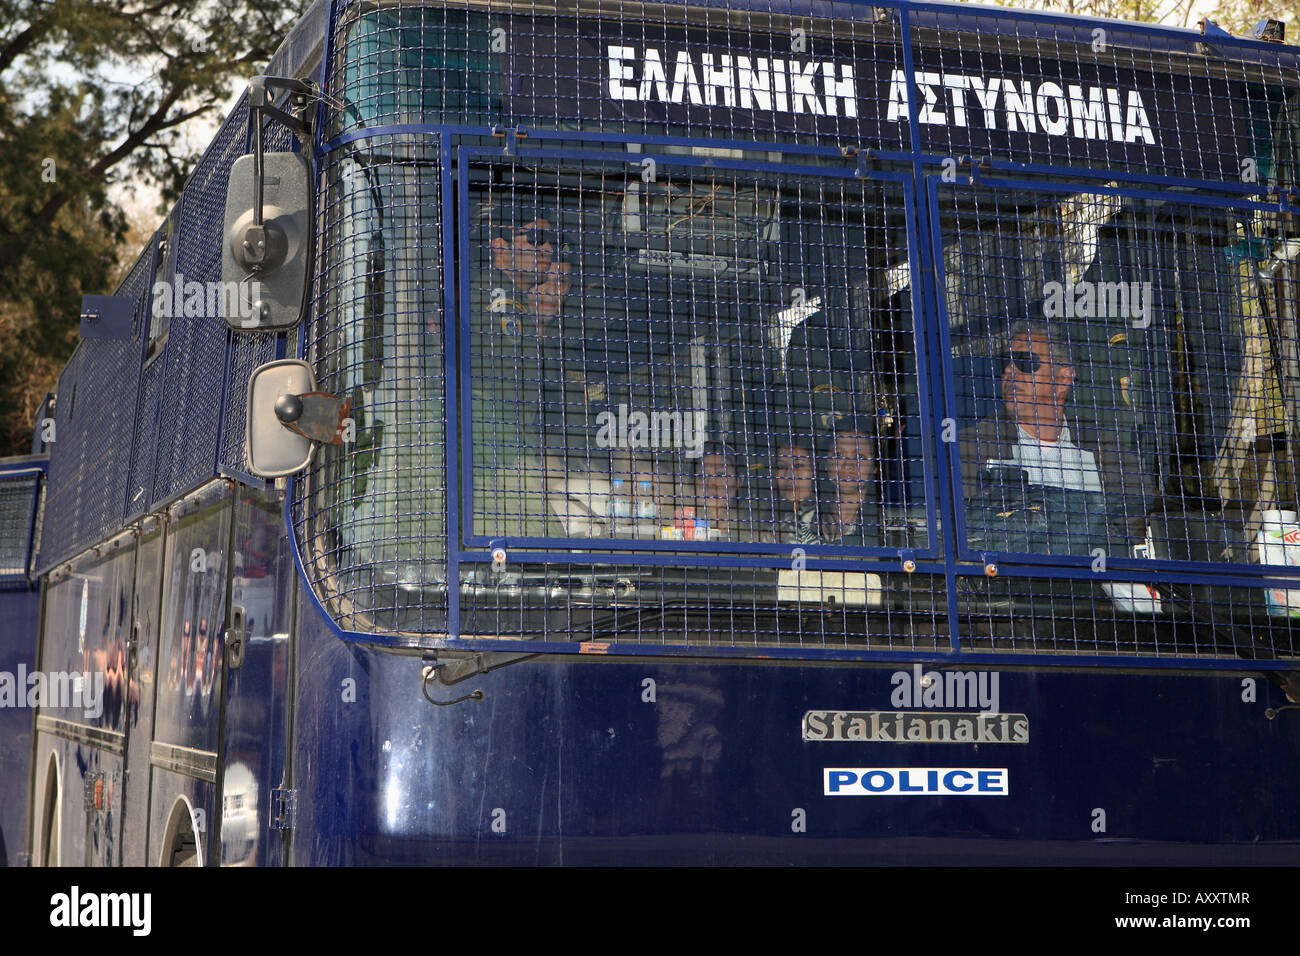 Pro-Tibetans arrested from greek police - Stock Image